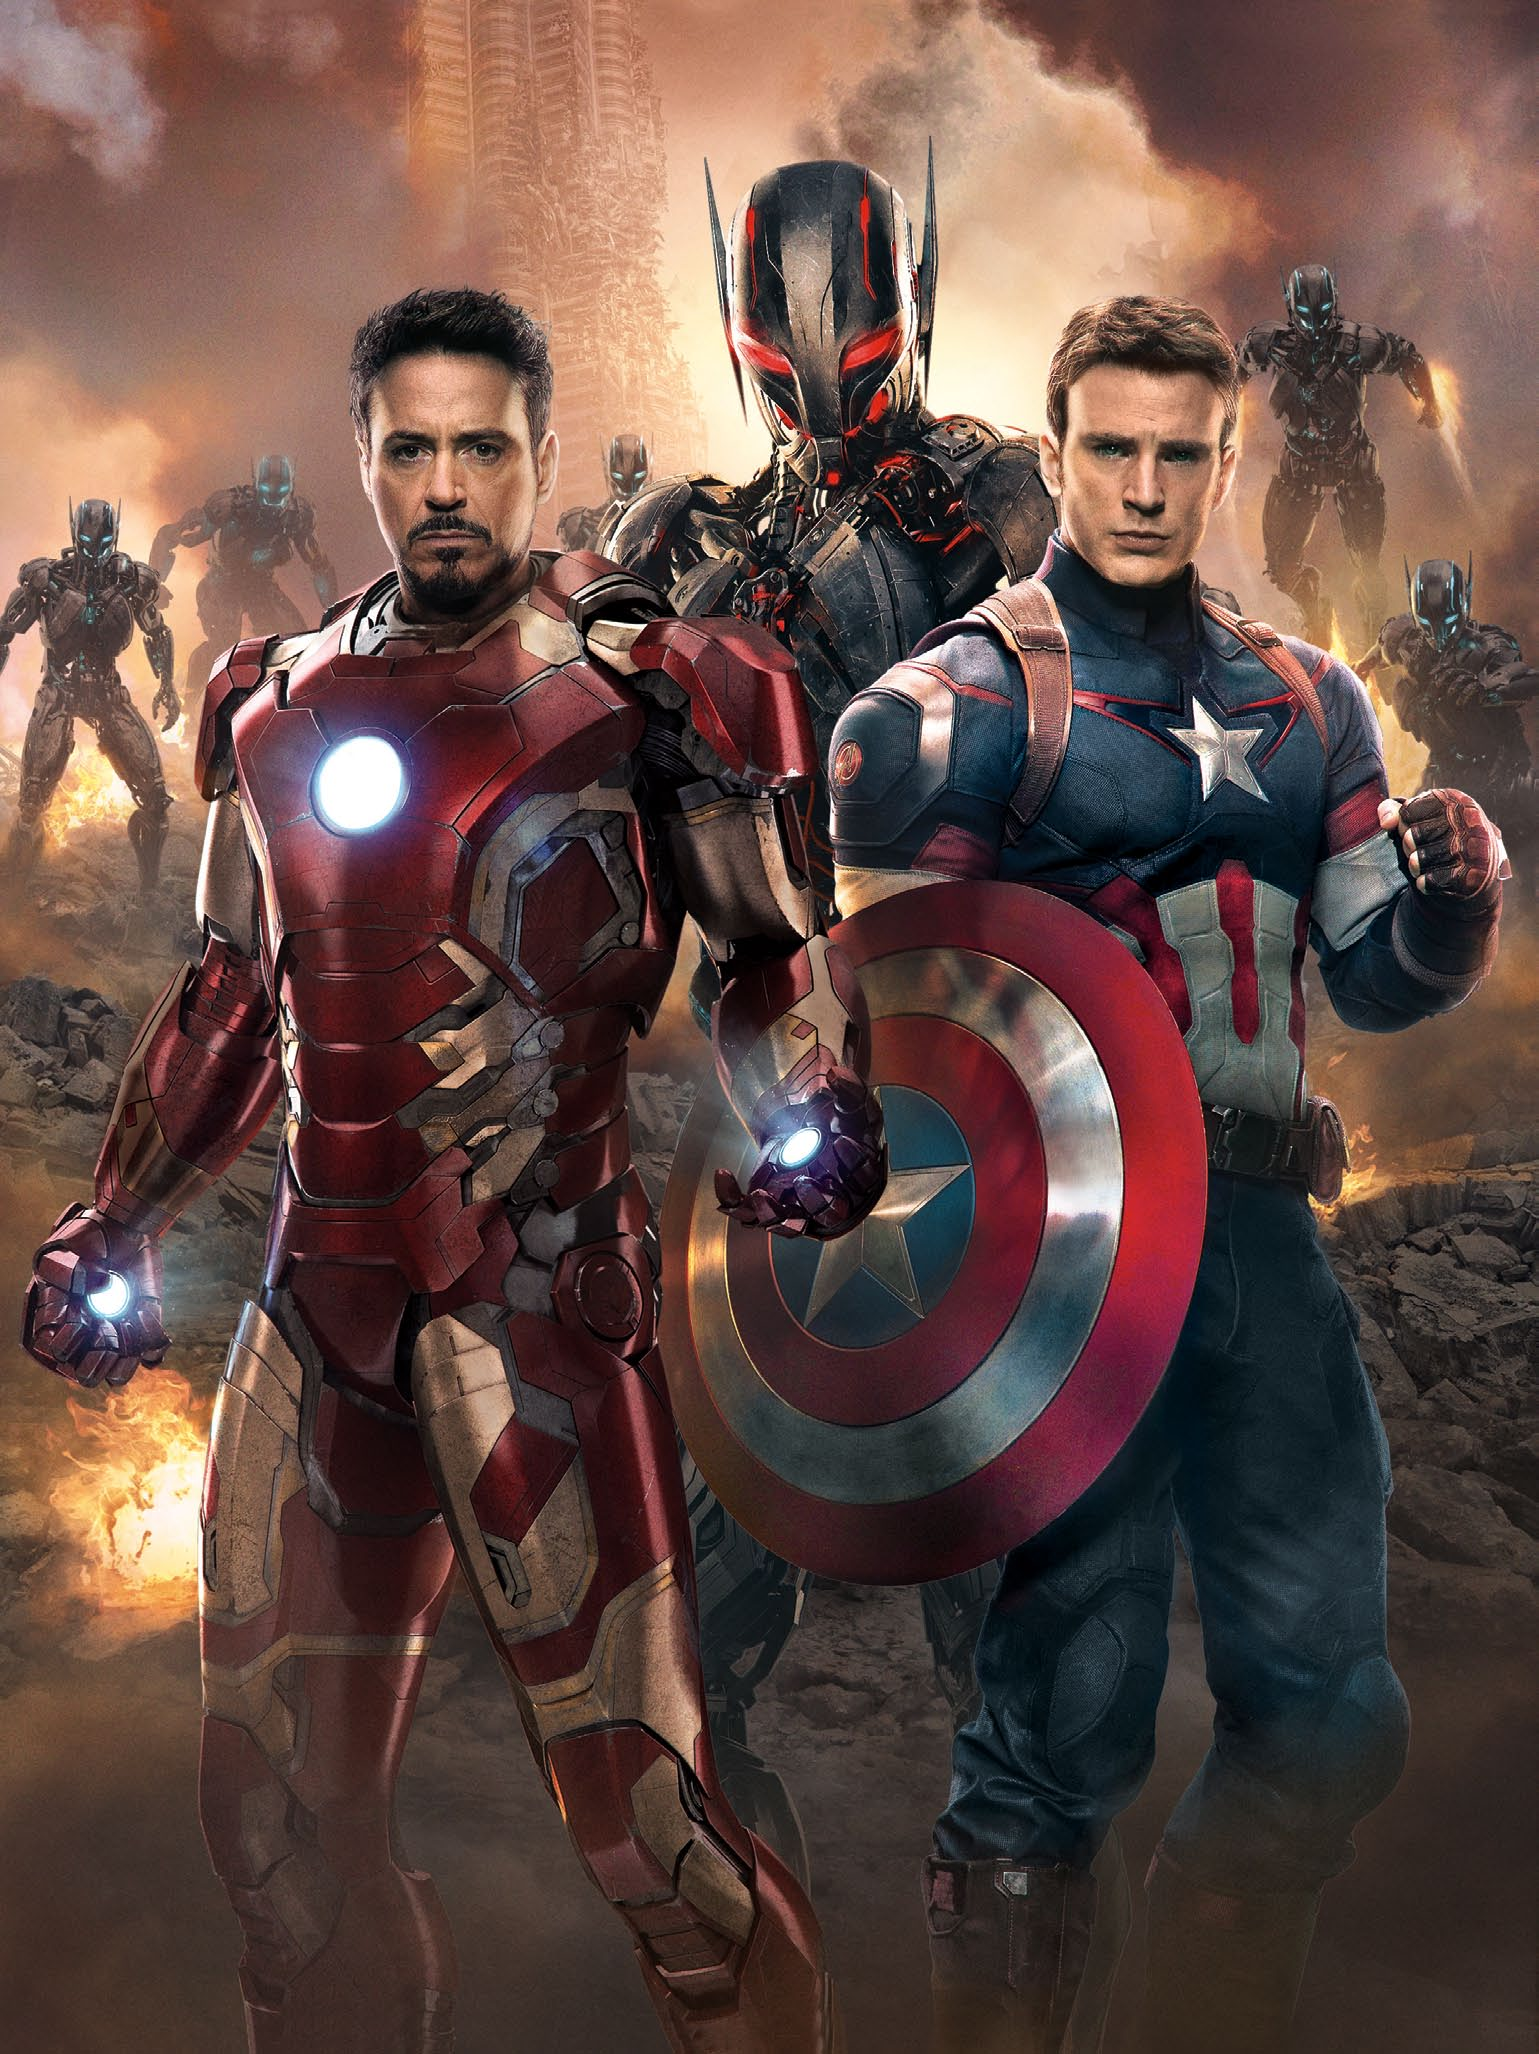 http://img3.wikia.nocookie.net/__cb20140719174339/disney/images/c/c9/Entertainment-Weekly-The-Avengers-Age-of-Ultron.jpg